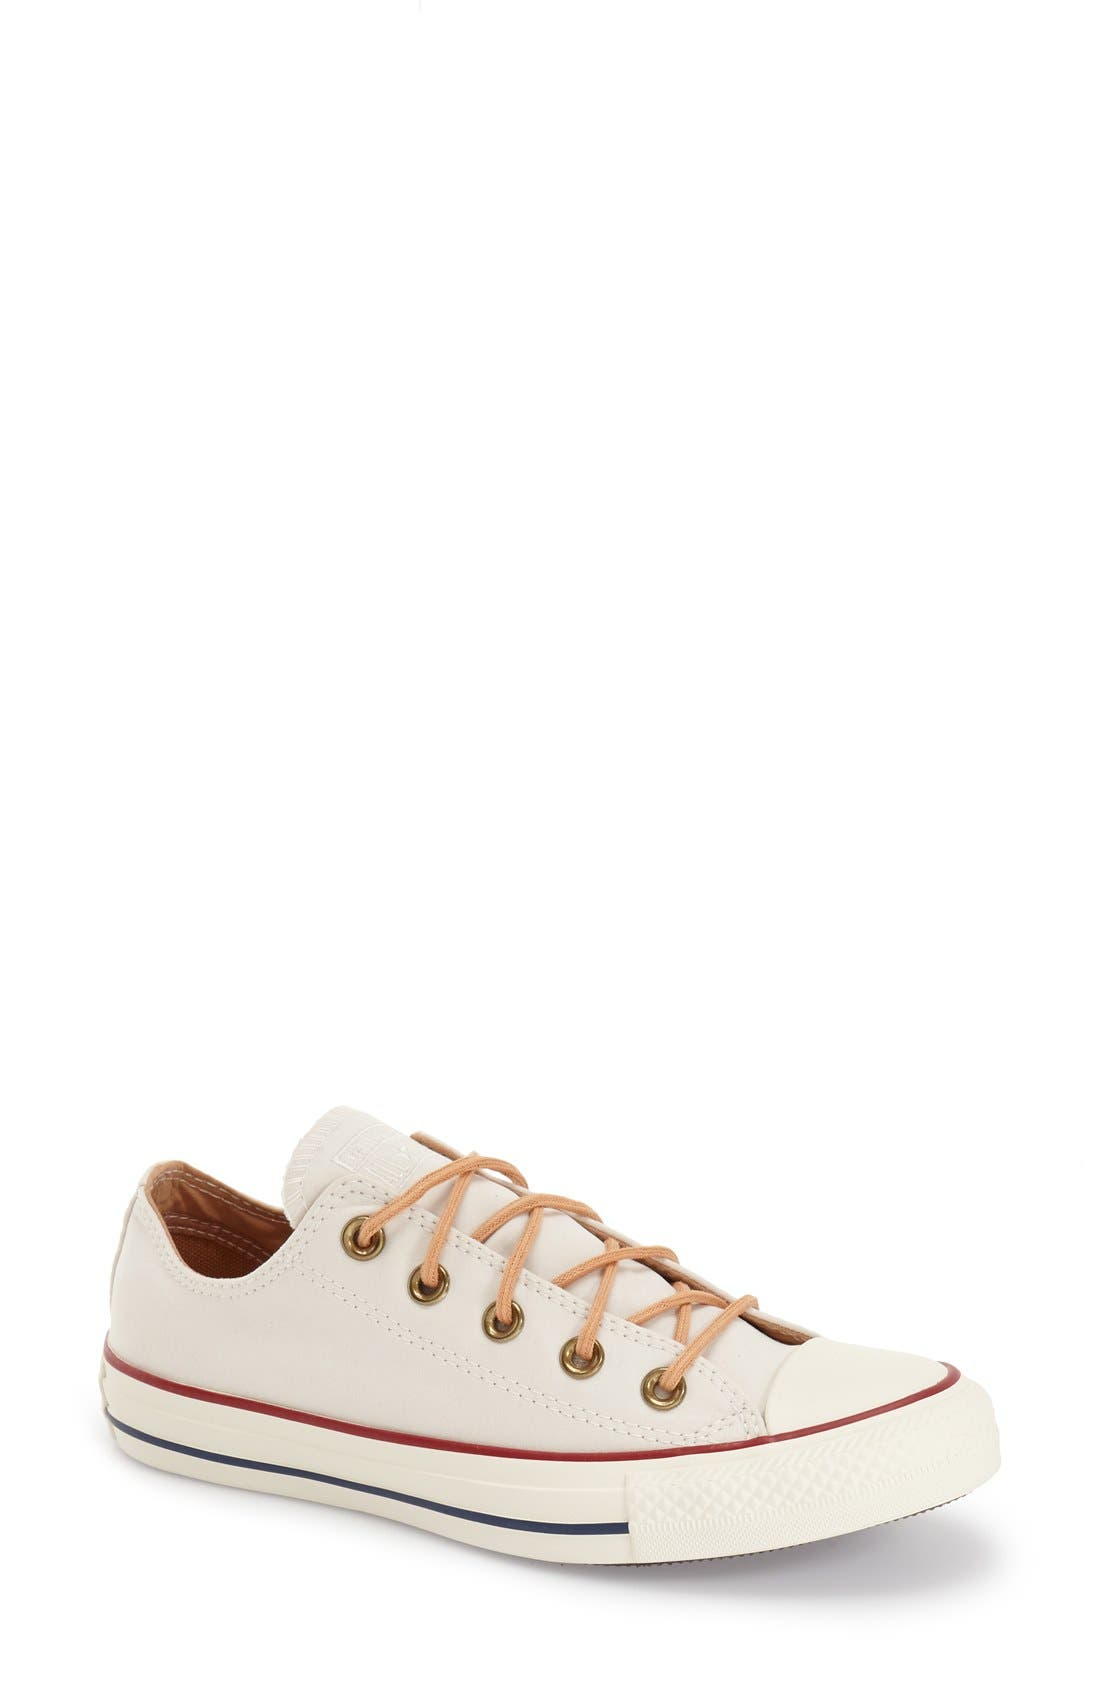 Main Image - Converse Chuck Taylor® All Star® 'Peached - Ox' Low Top Sneaker (Women)